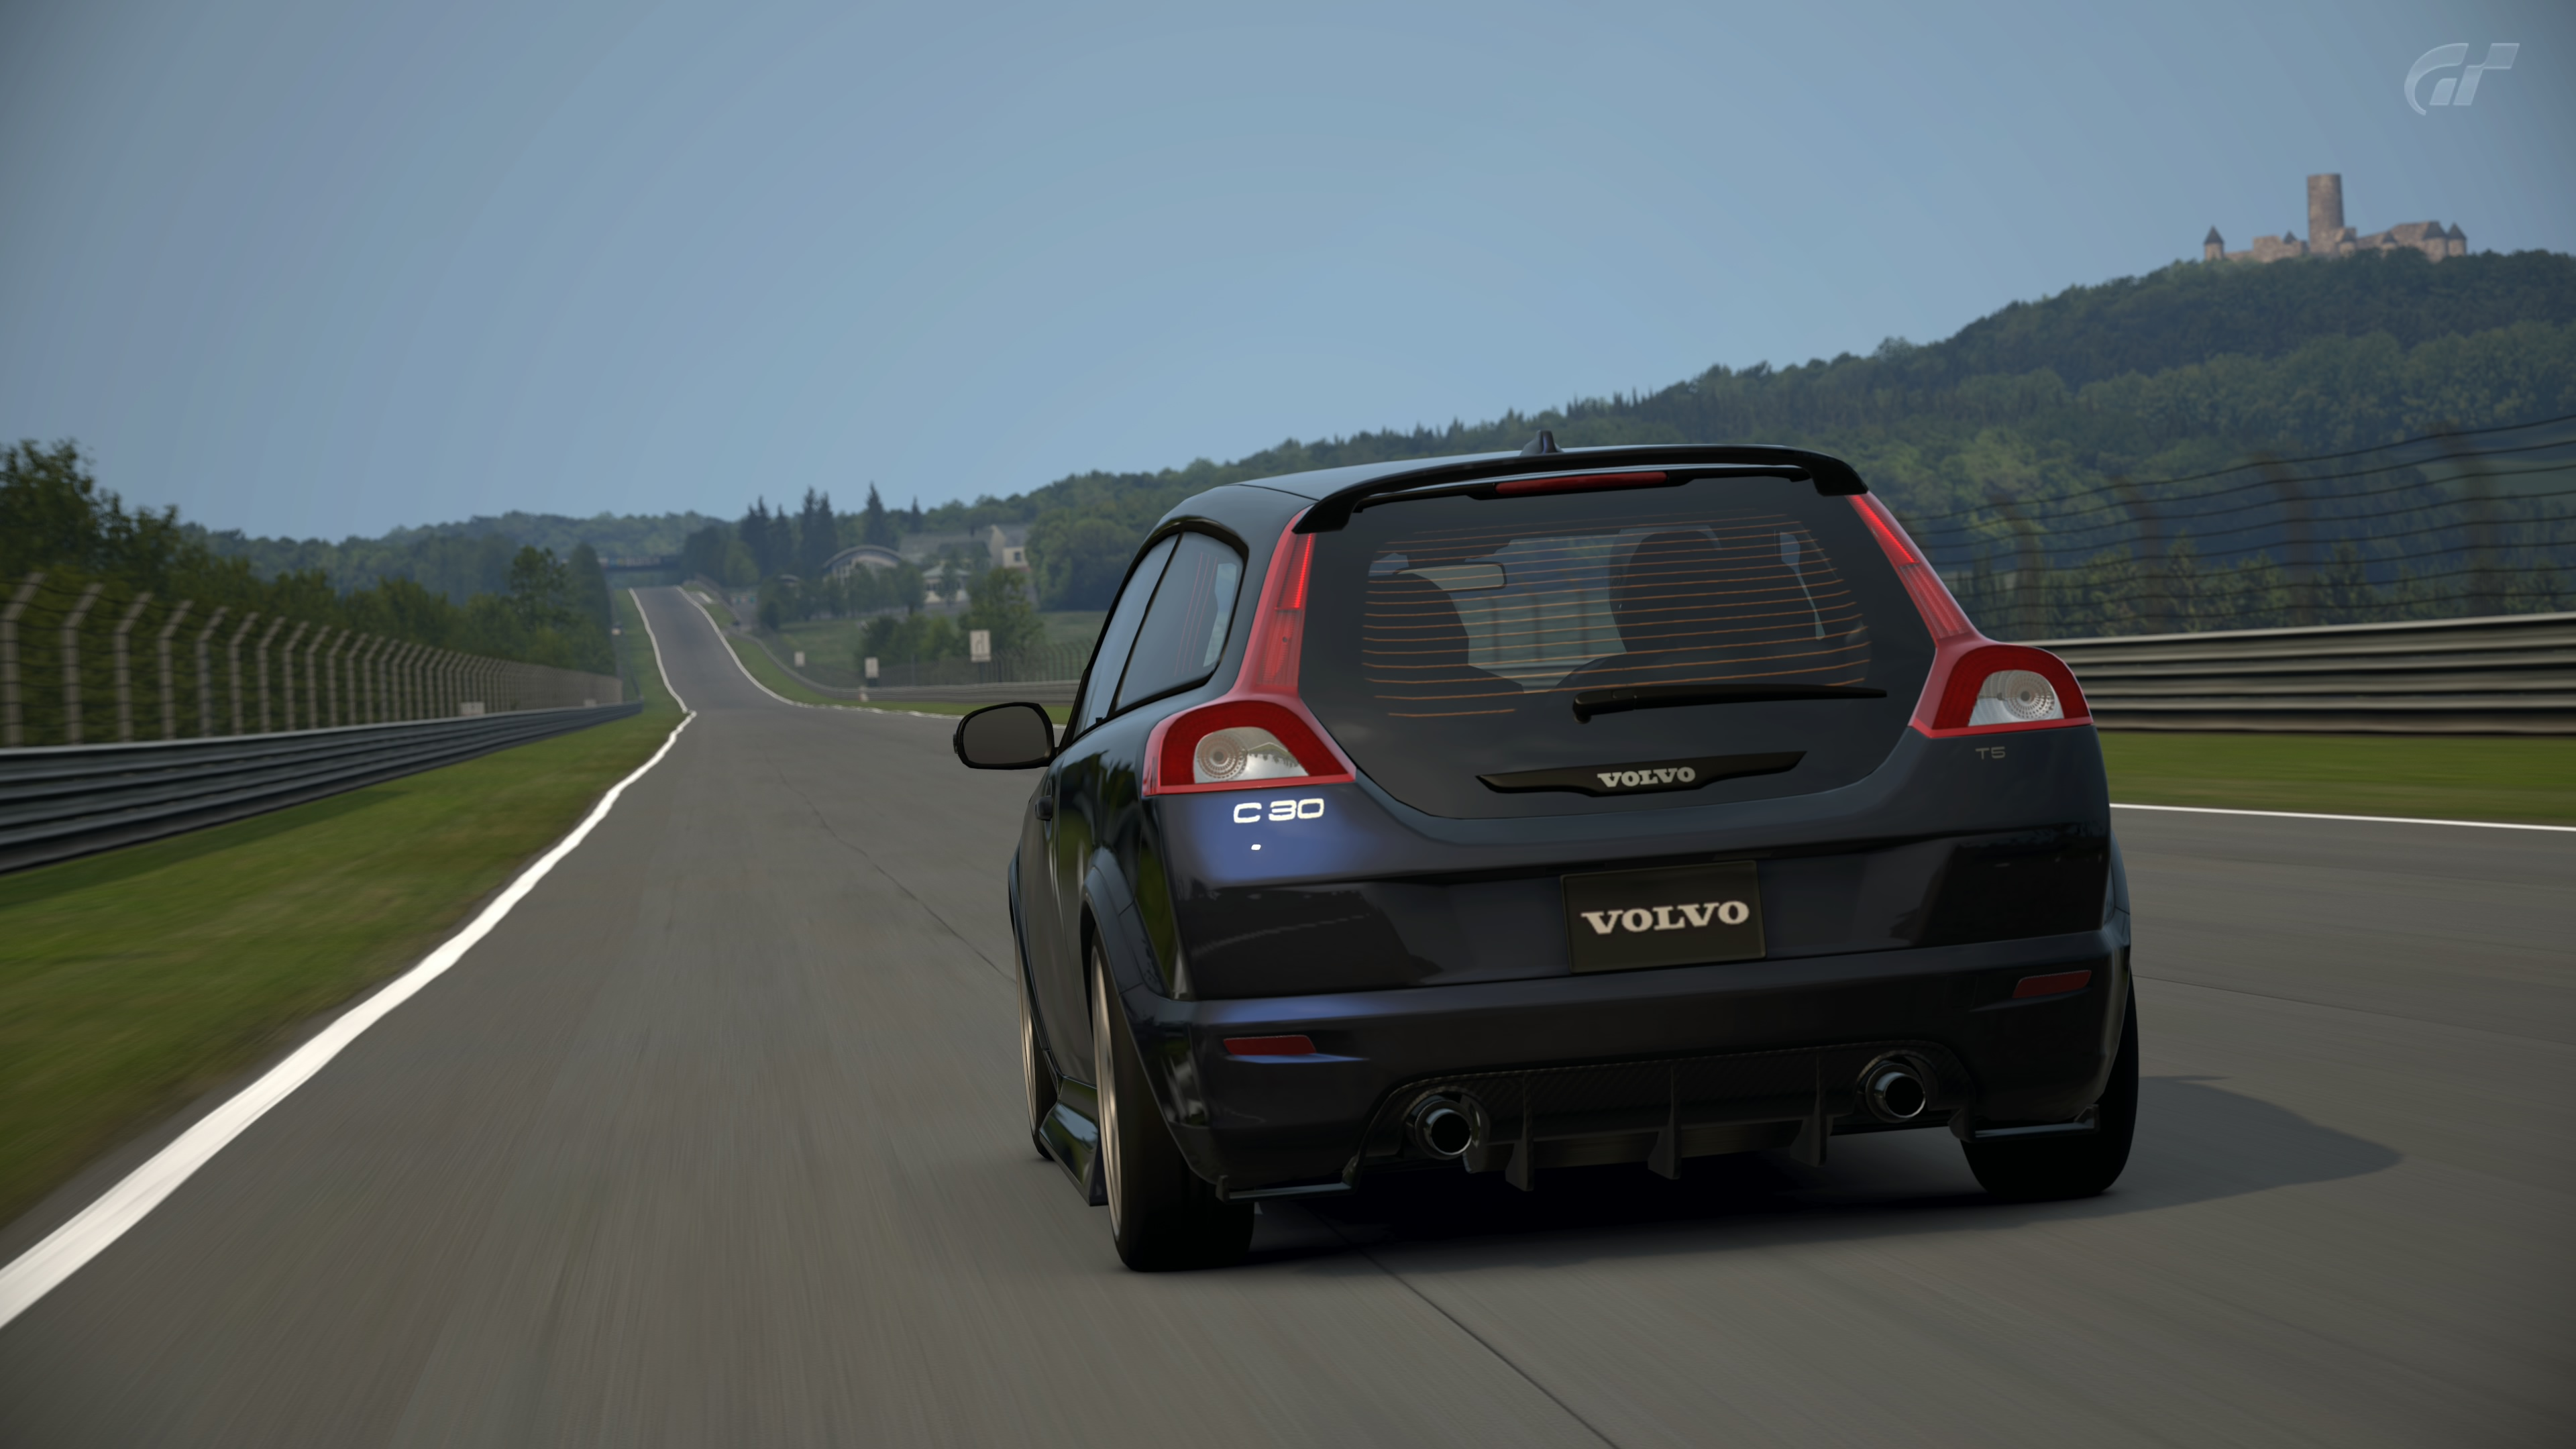 Volvo c30 r design 16 photo